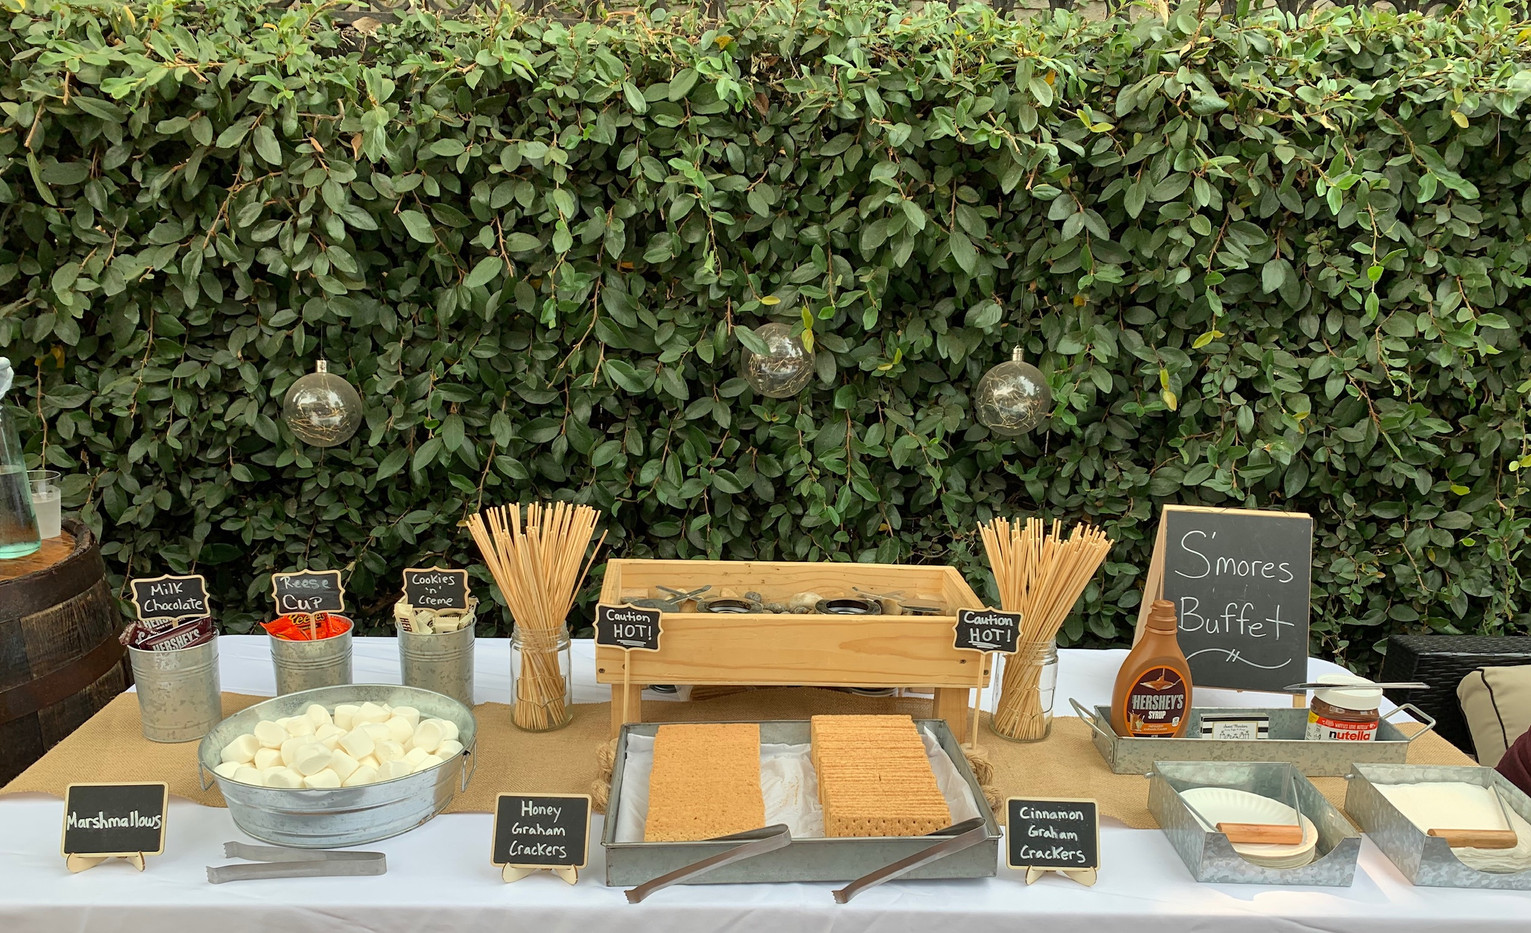 Bridal Shower S'mores Buffet